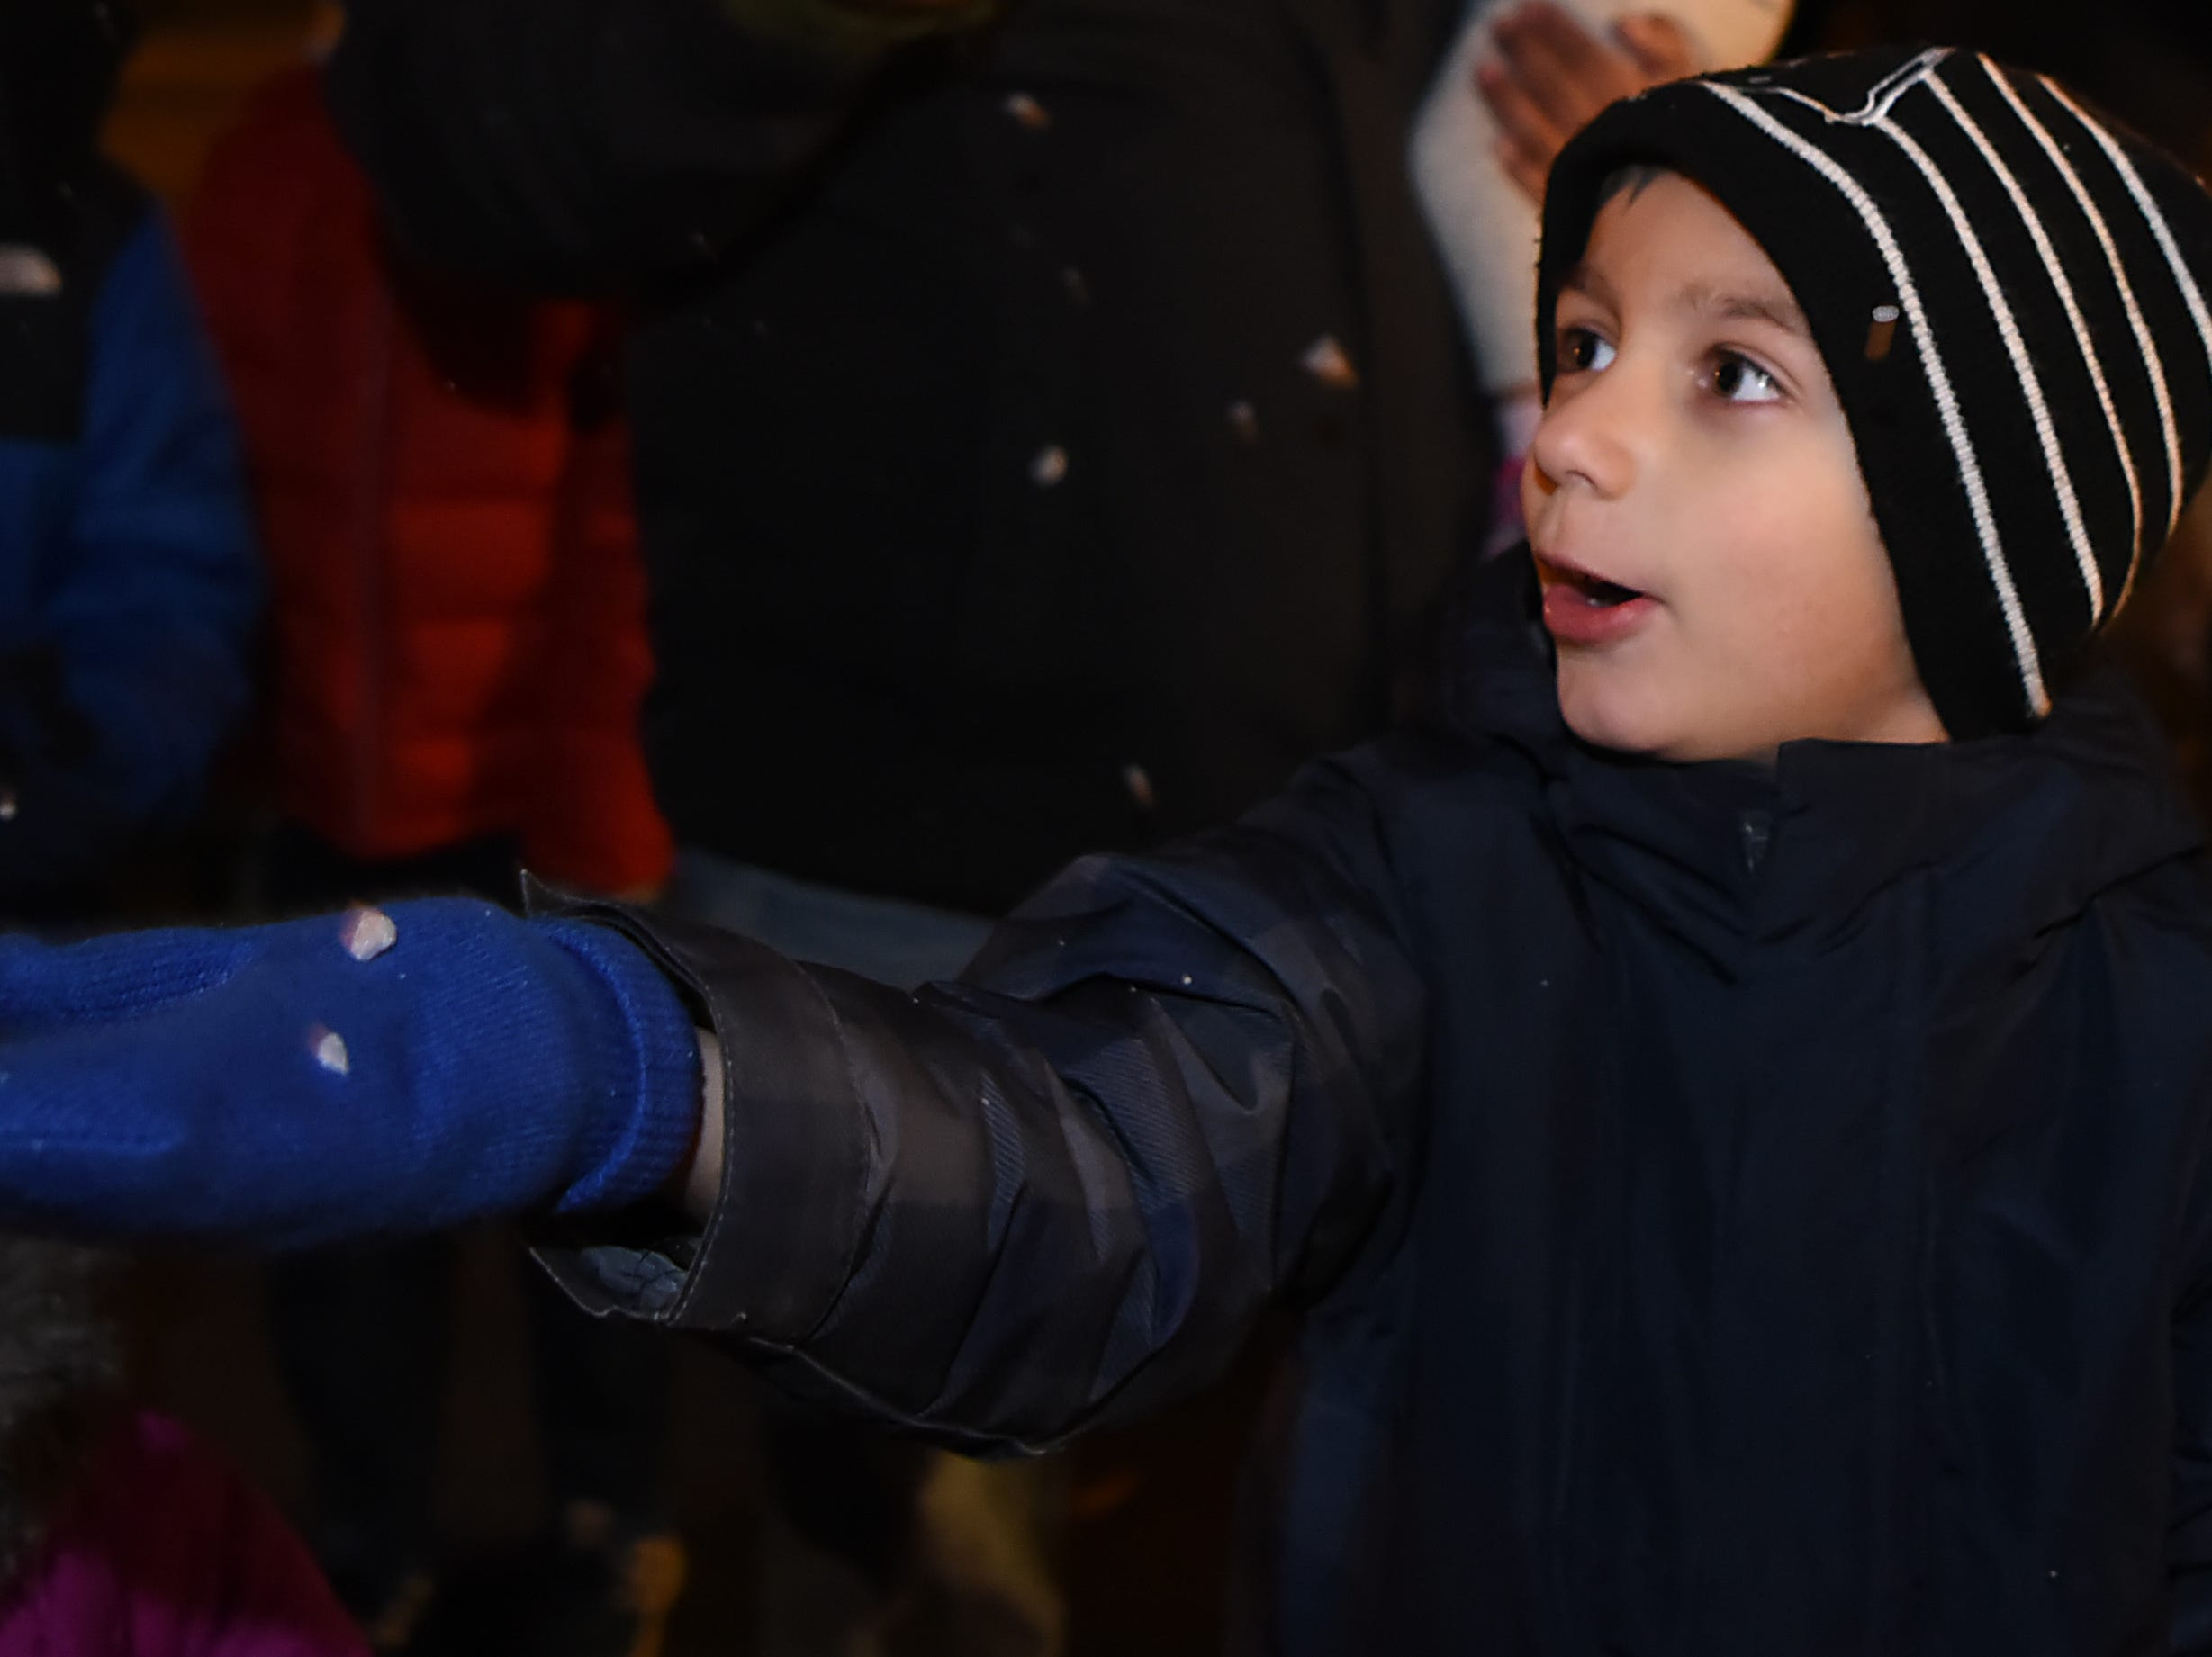 Rafel Calderon, 5, catches some snow from the snow machine on his mitten during the Montclair tree lighting in Montclair  on Friday December 7, 2018.